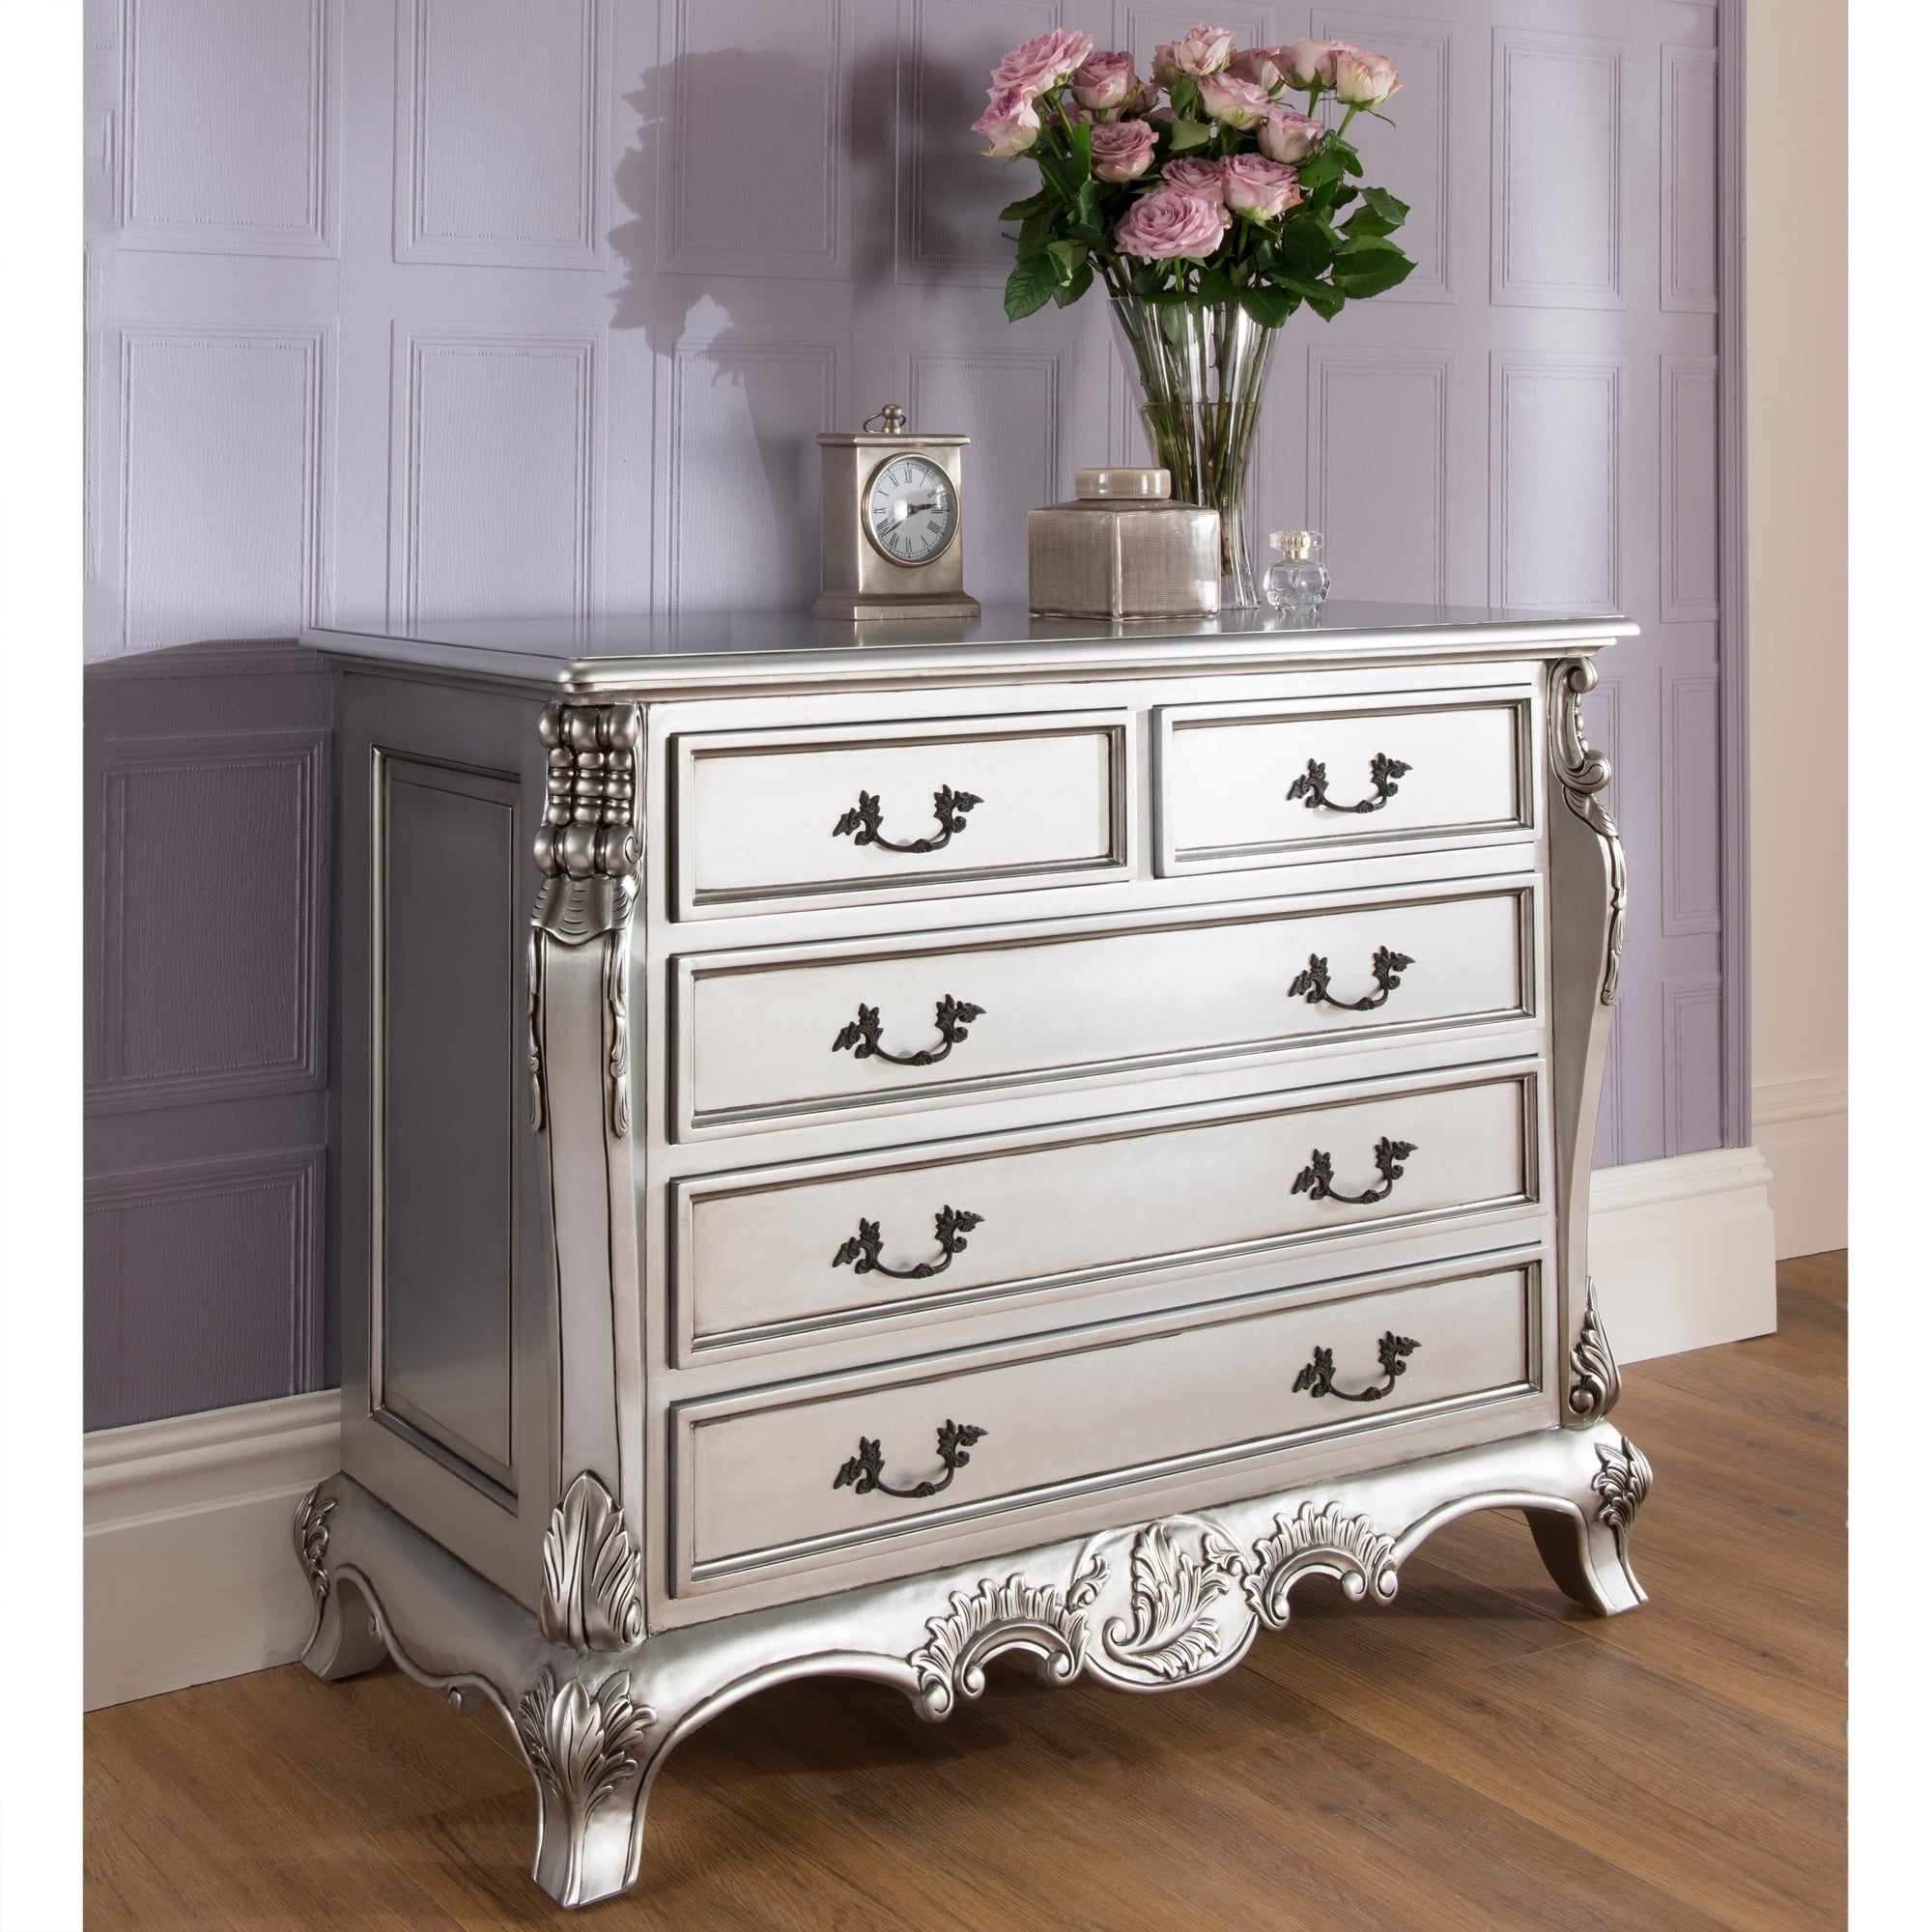 La rochelle antique french silver chest stunning range for French style bedroom furniture